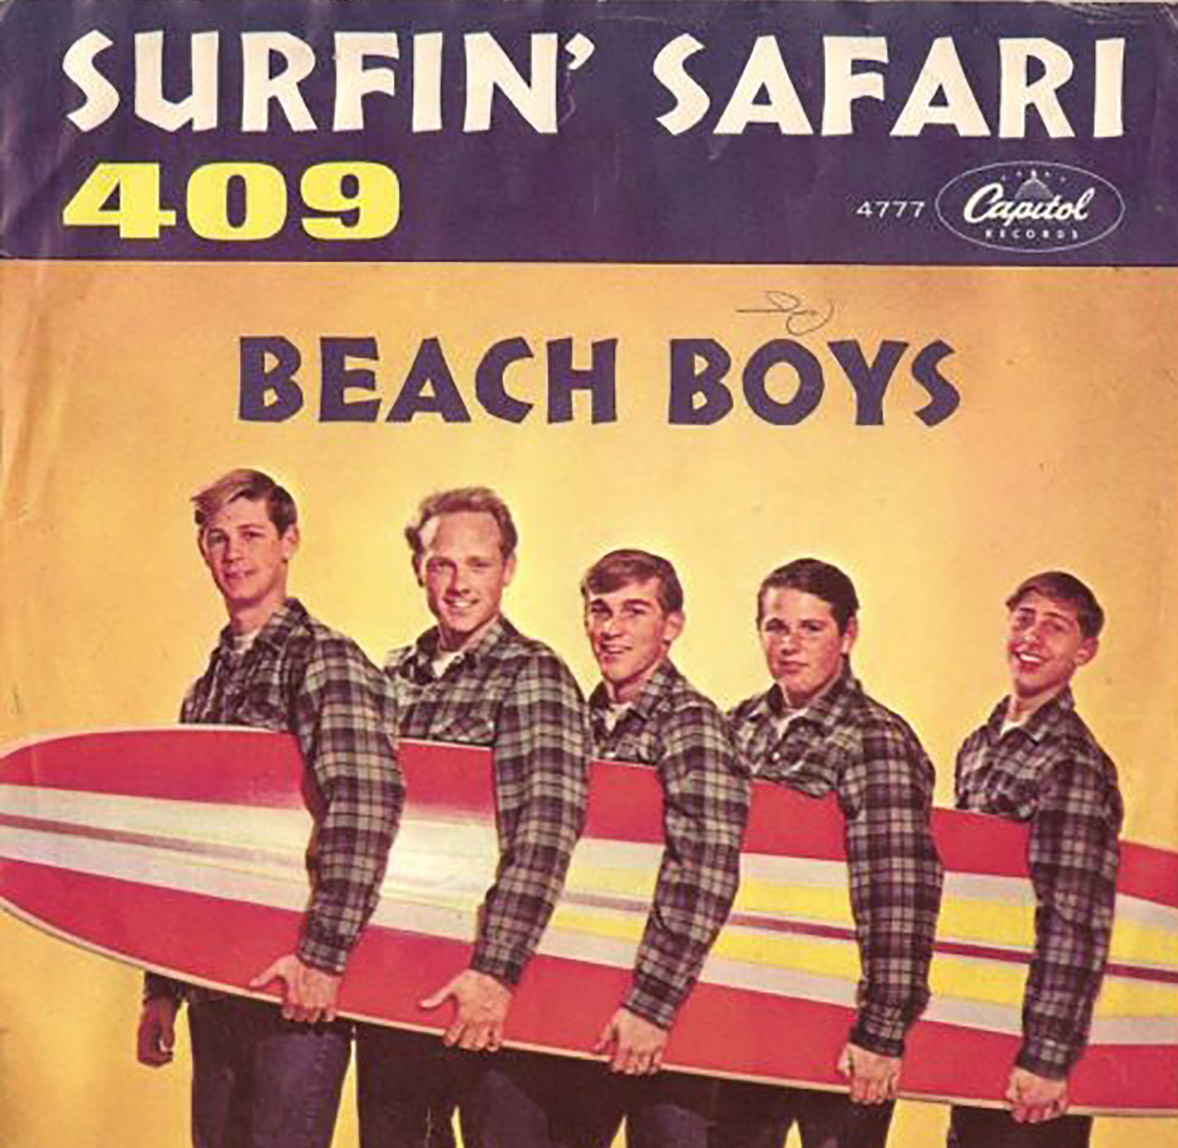 Thursday Cartune 409 By The Beach Boys Rides Amp Drives